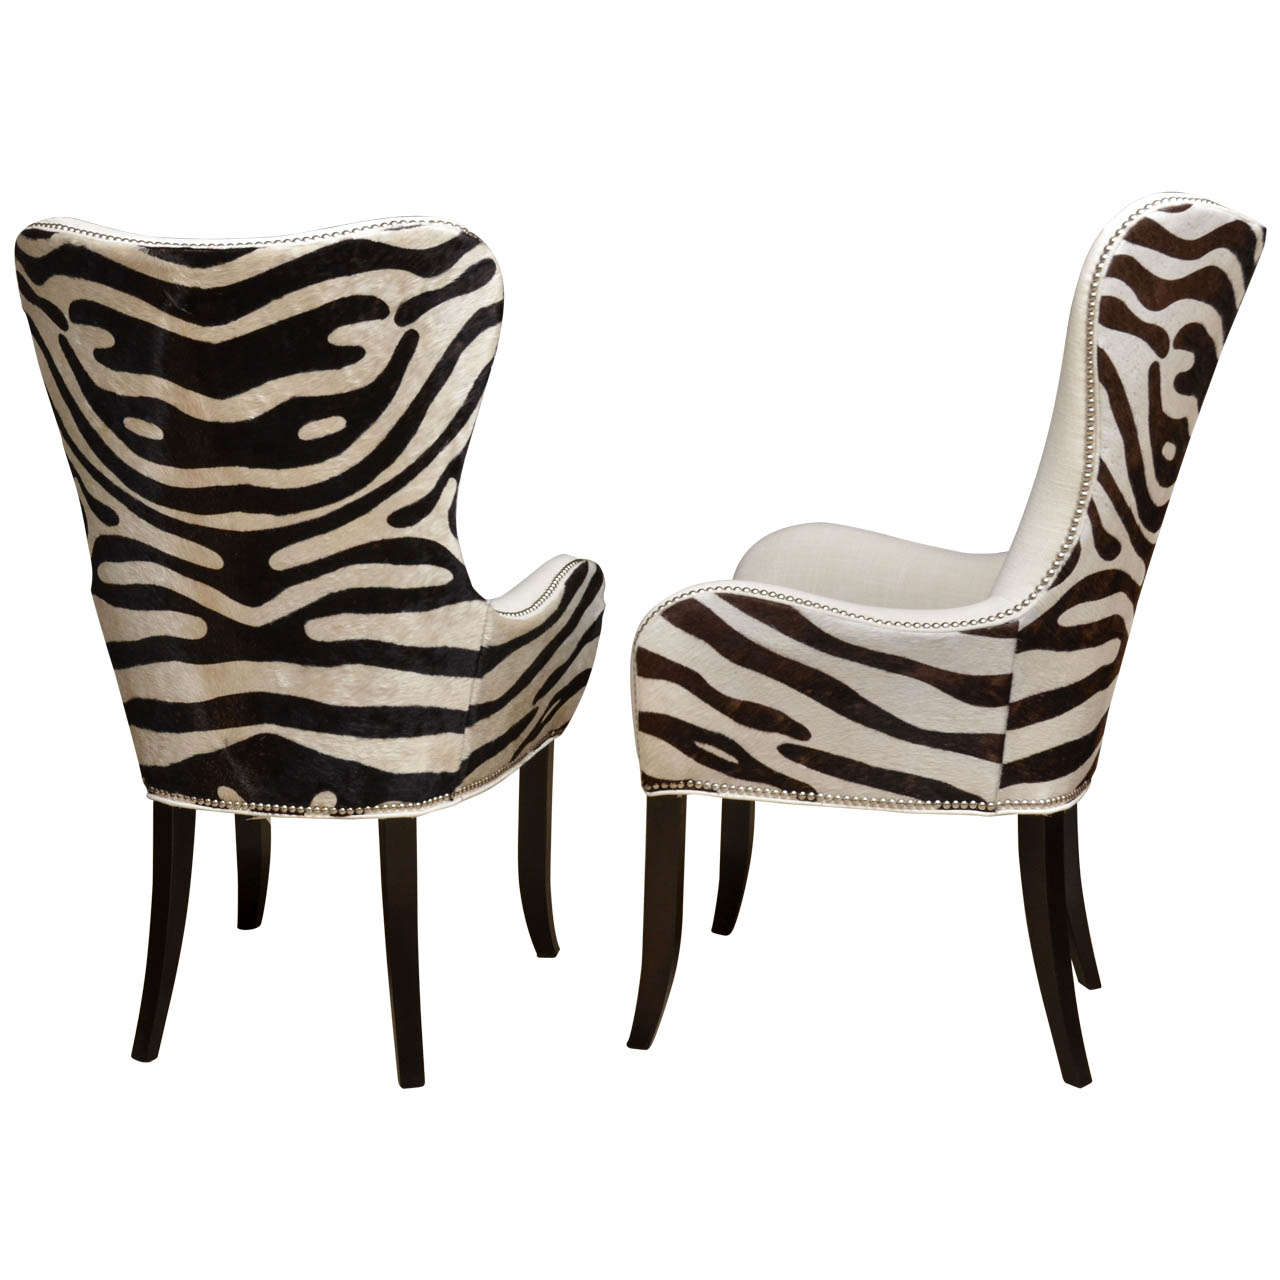 Pair of cowhide stenciled zebra arm chairs